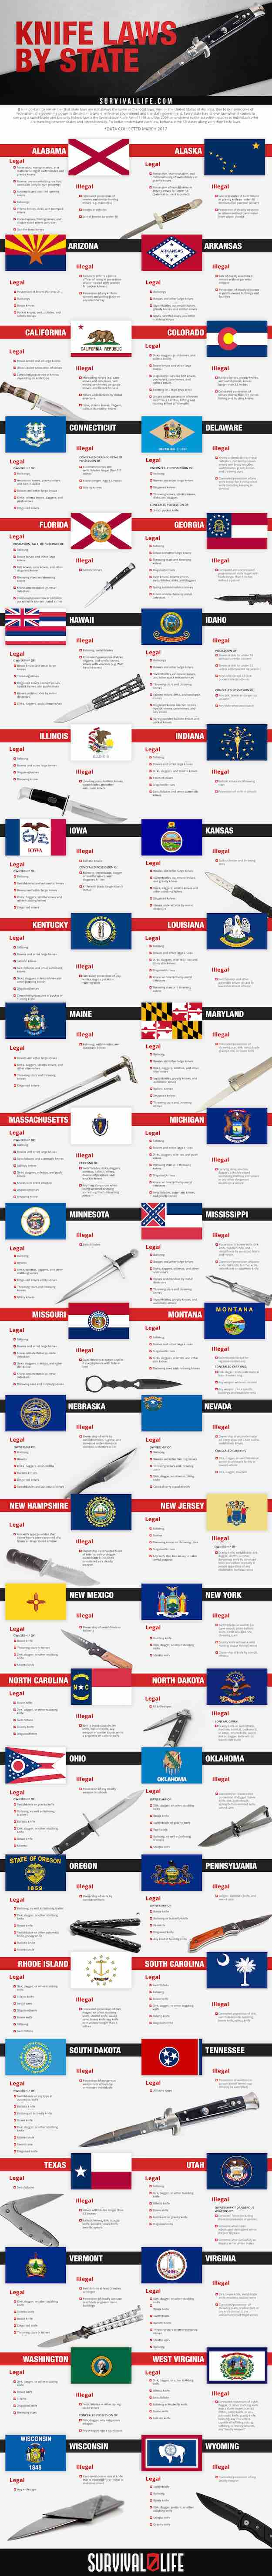 knife laws by state compressed